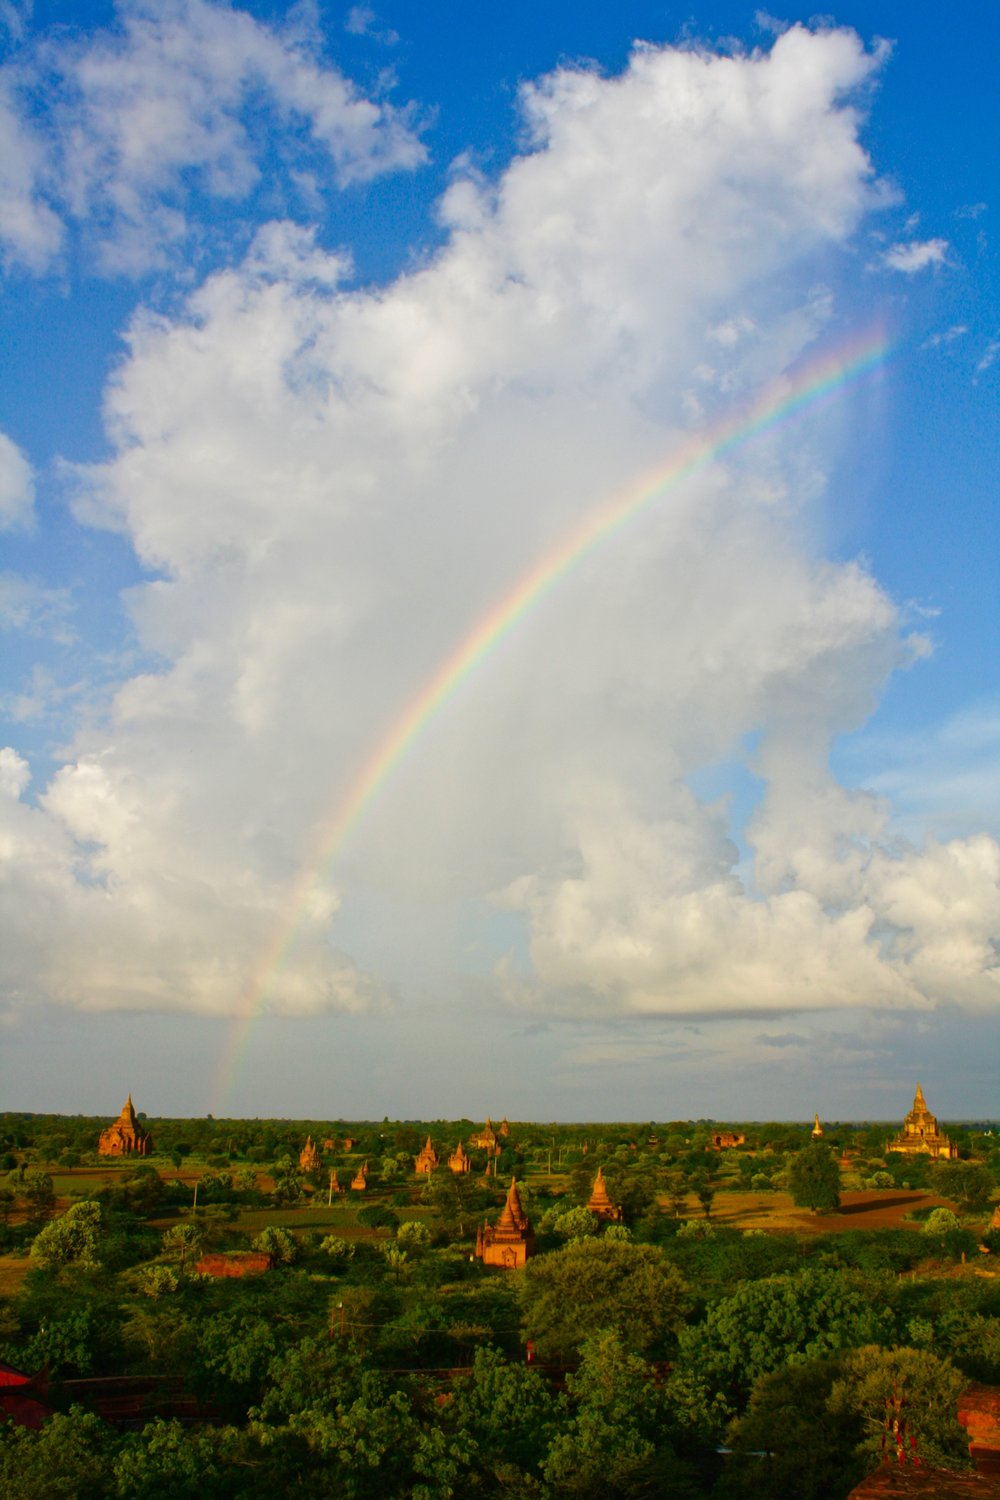 Bagan is somewhere everyone should see before they die.